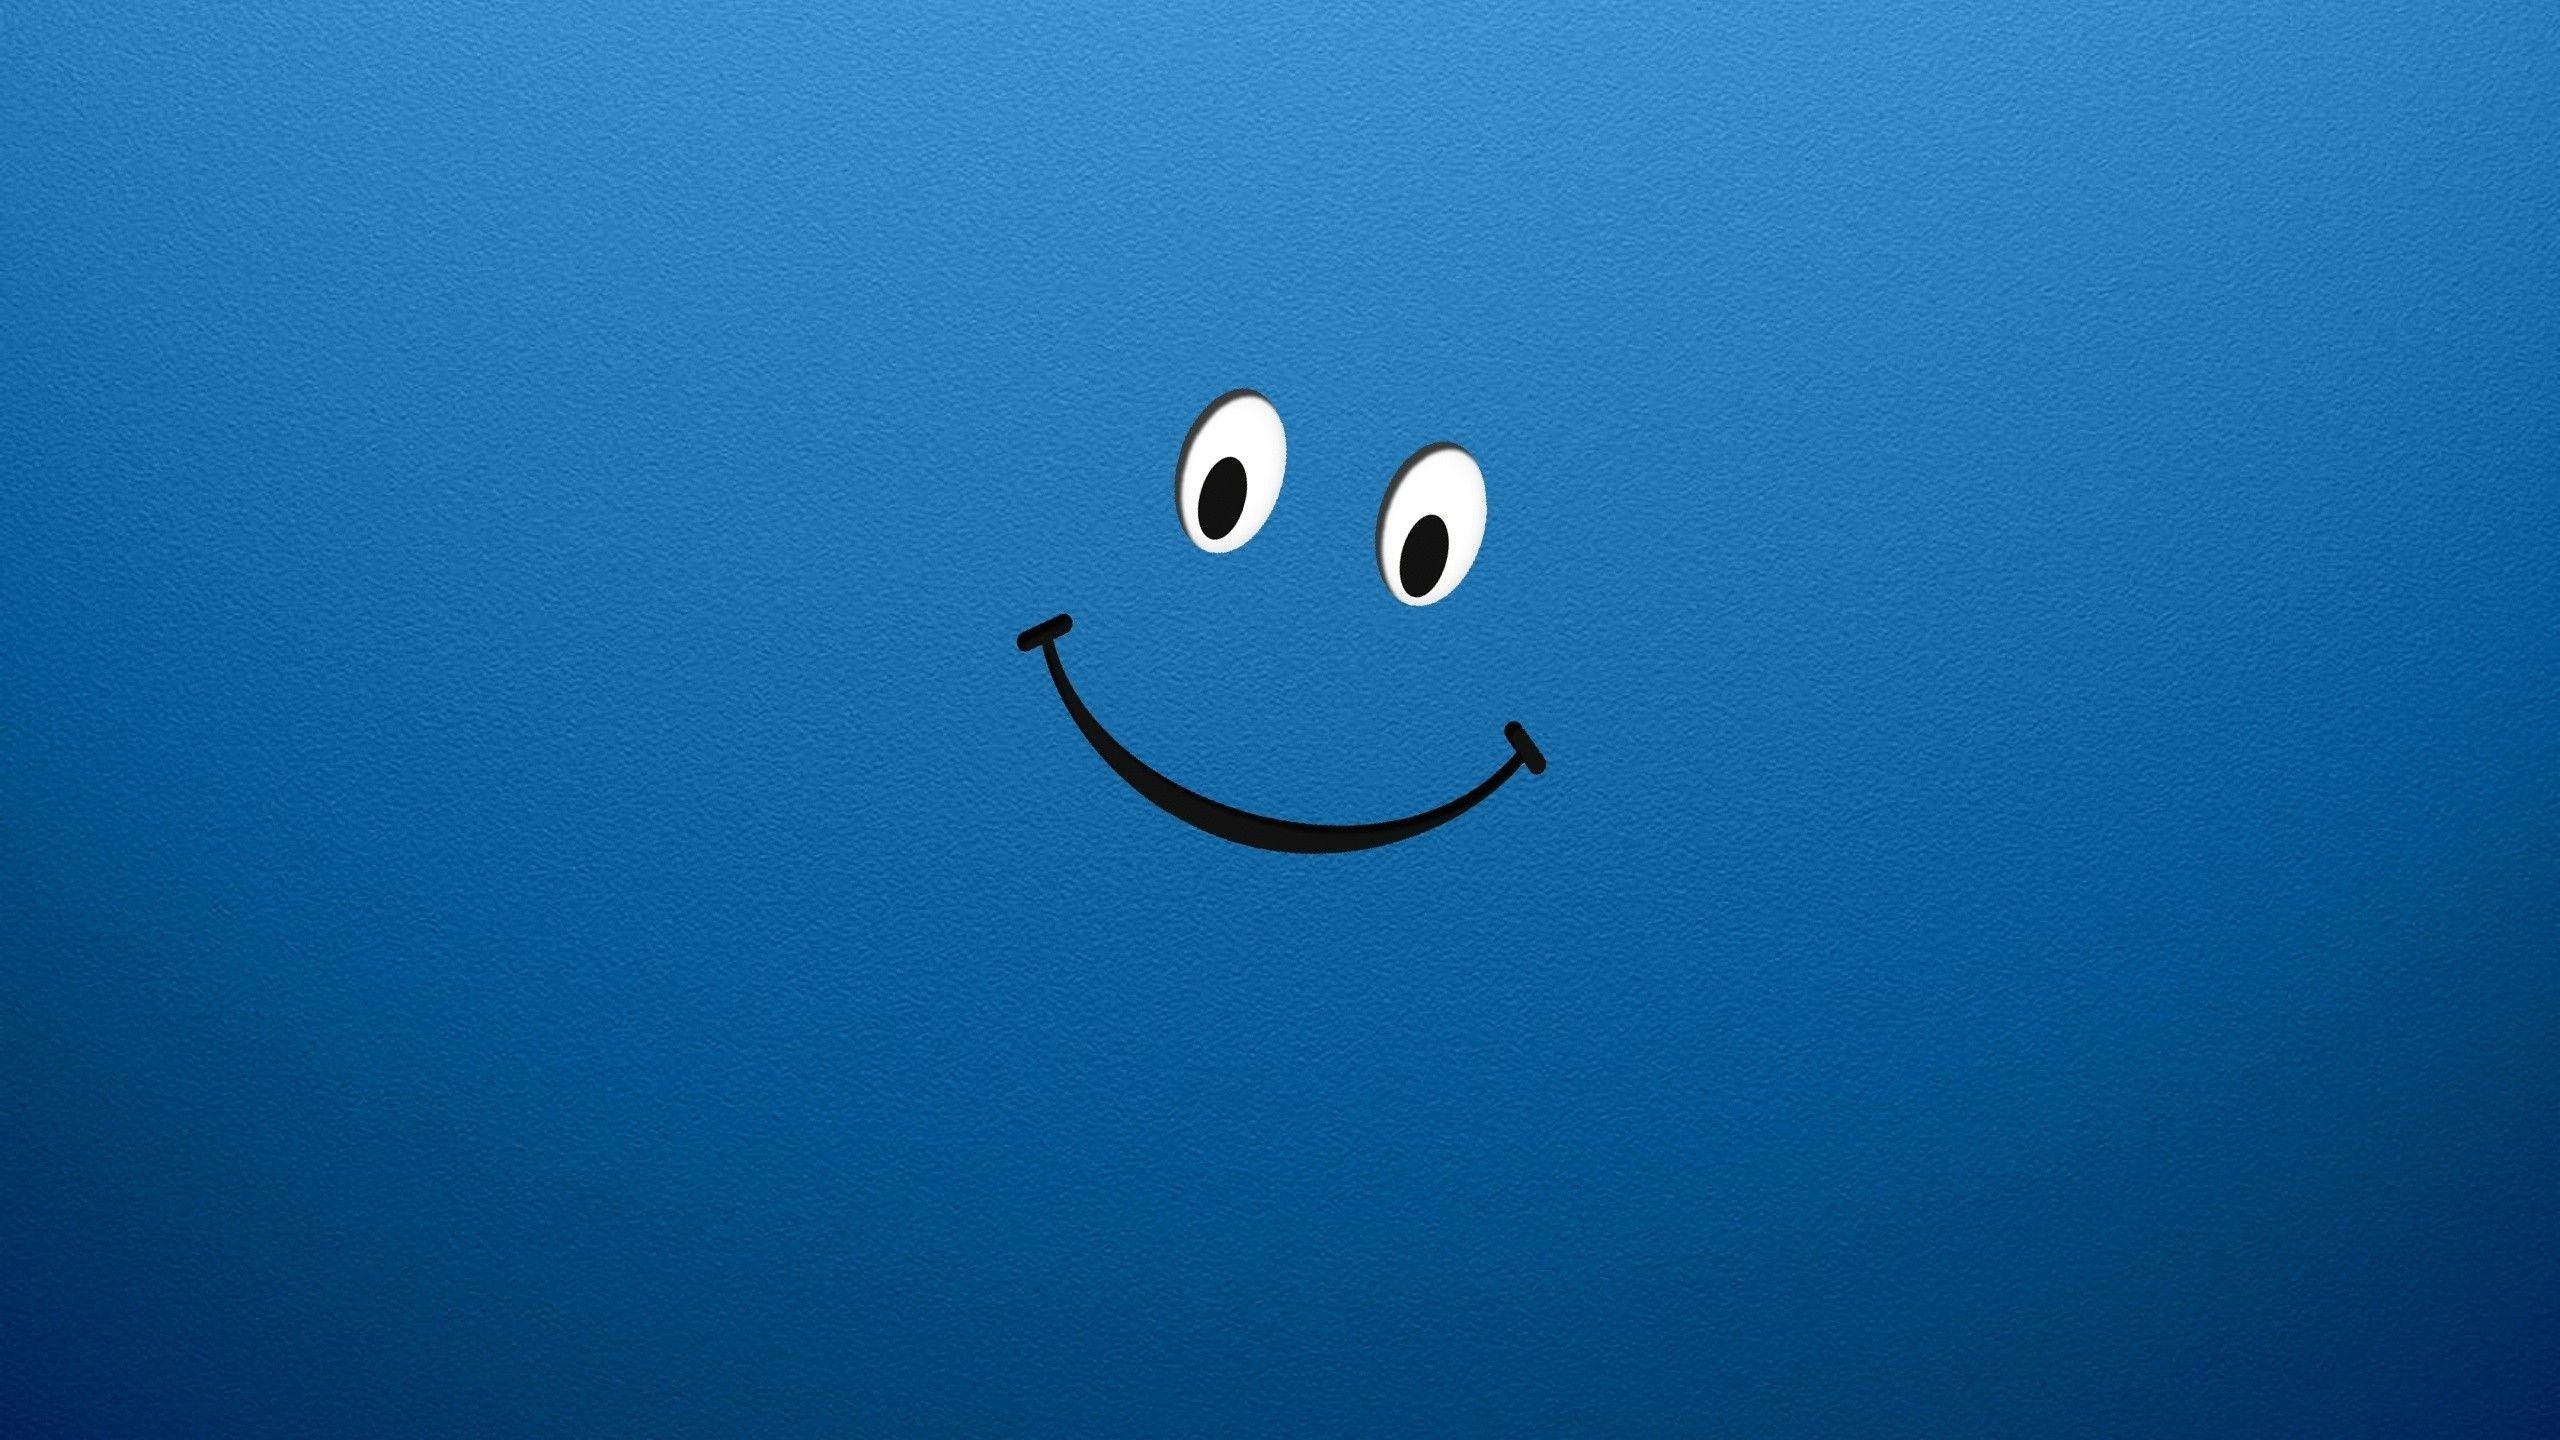 Smiley Face Wallpaper Screensavers: Happy Face Wallpapers (54+ Images